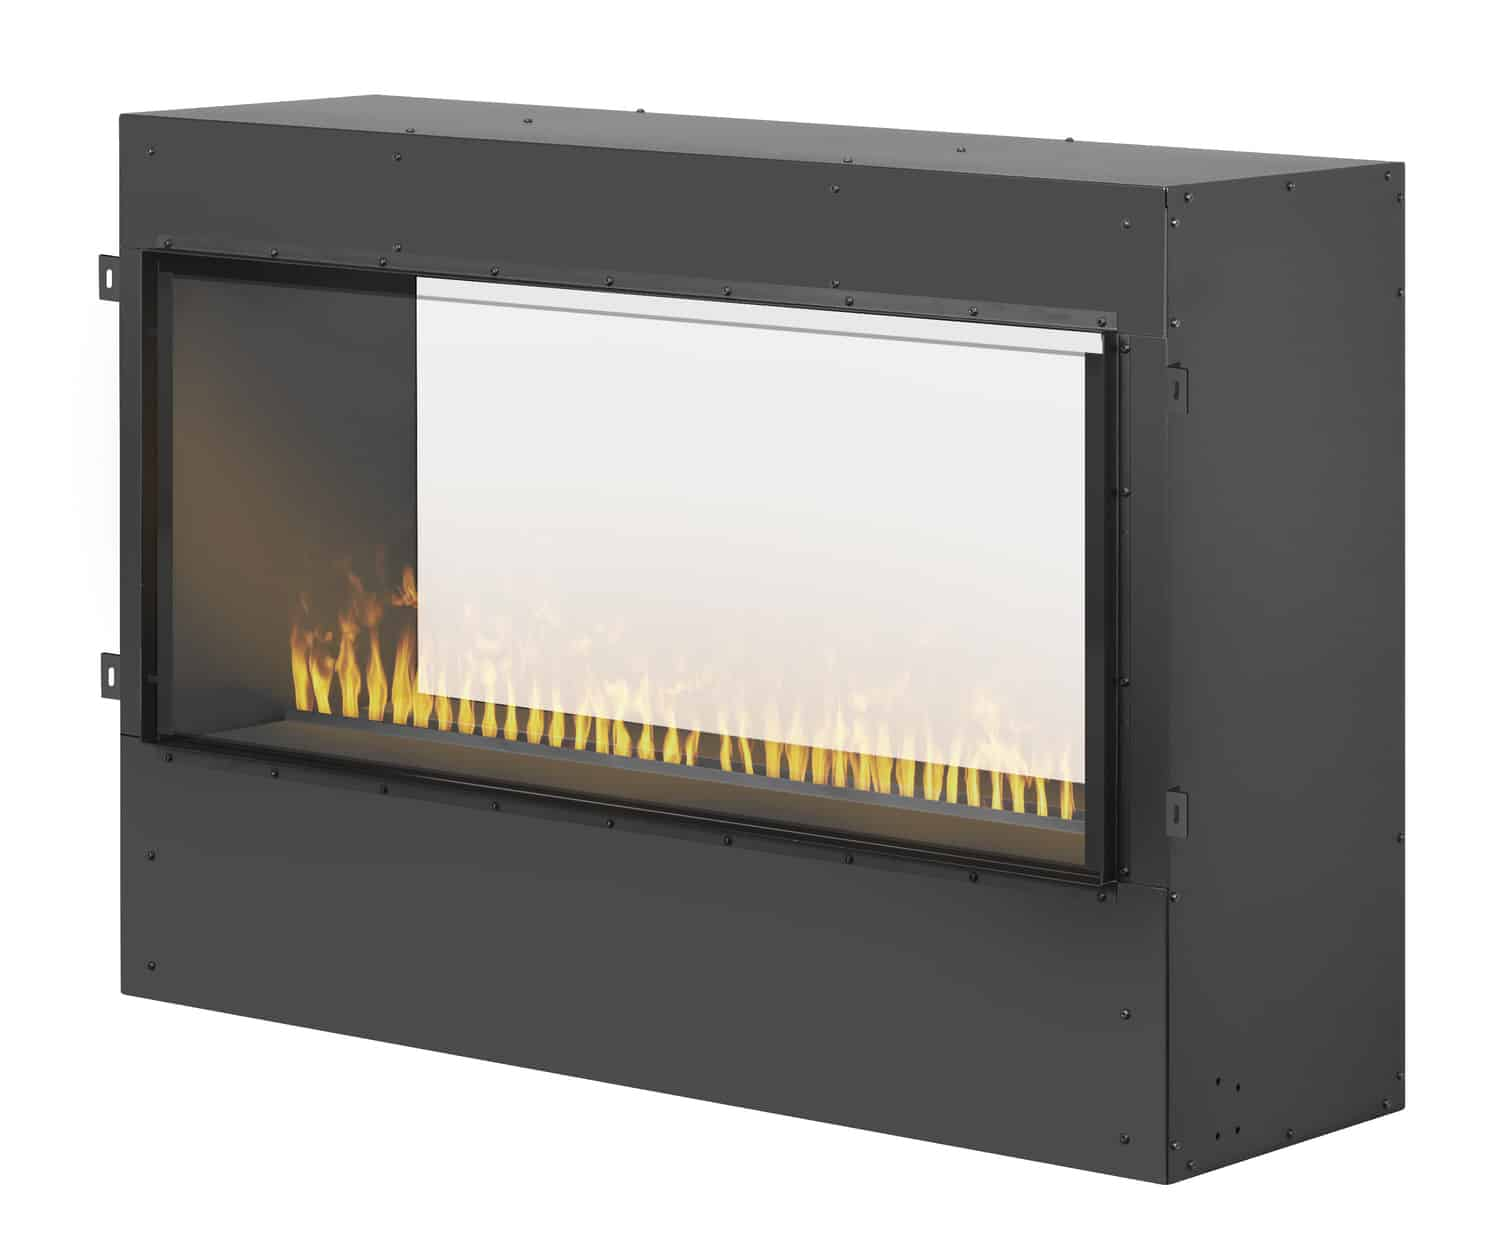 ca fireplaces efca linear in electric fireplace synergy accessories products wallmount built dimplex